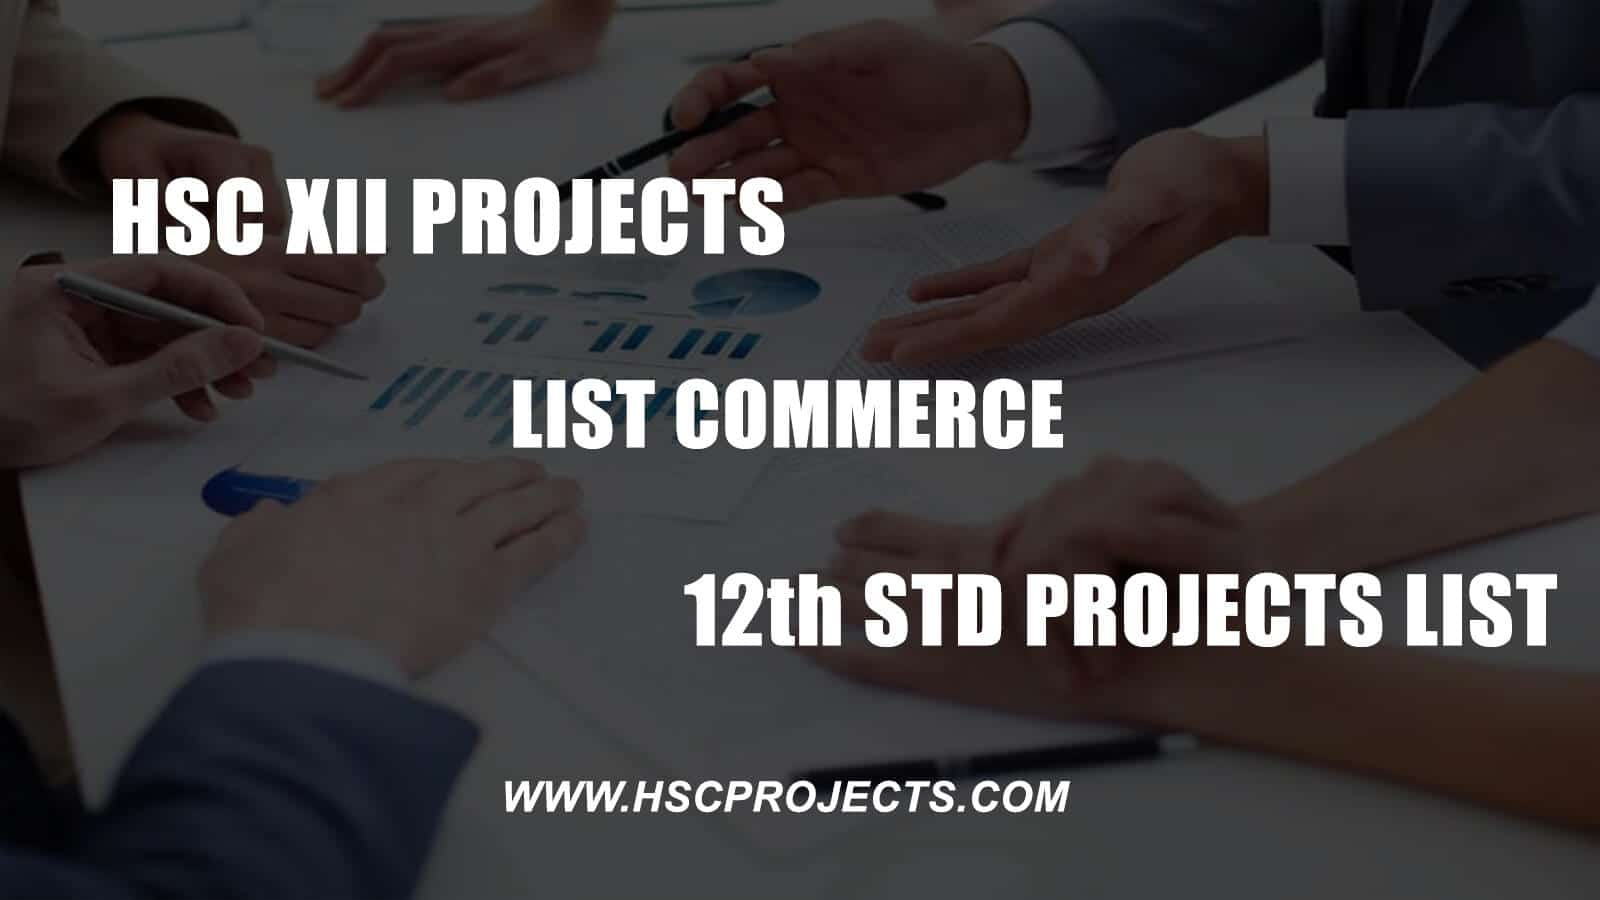 HSC XII Projects List Commerce - 12th STD Projects List